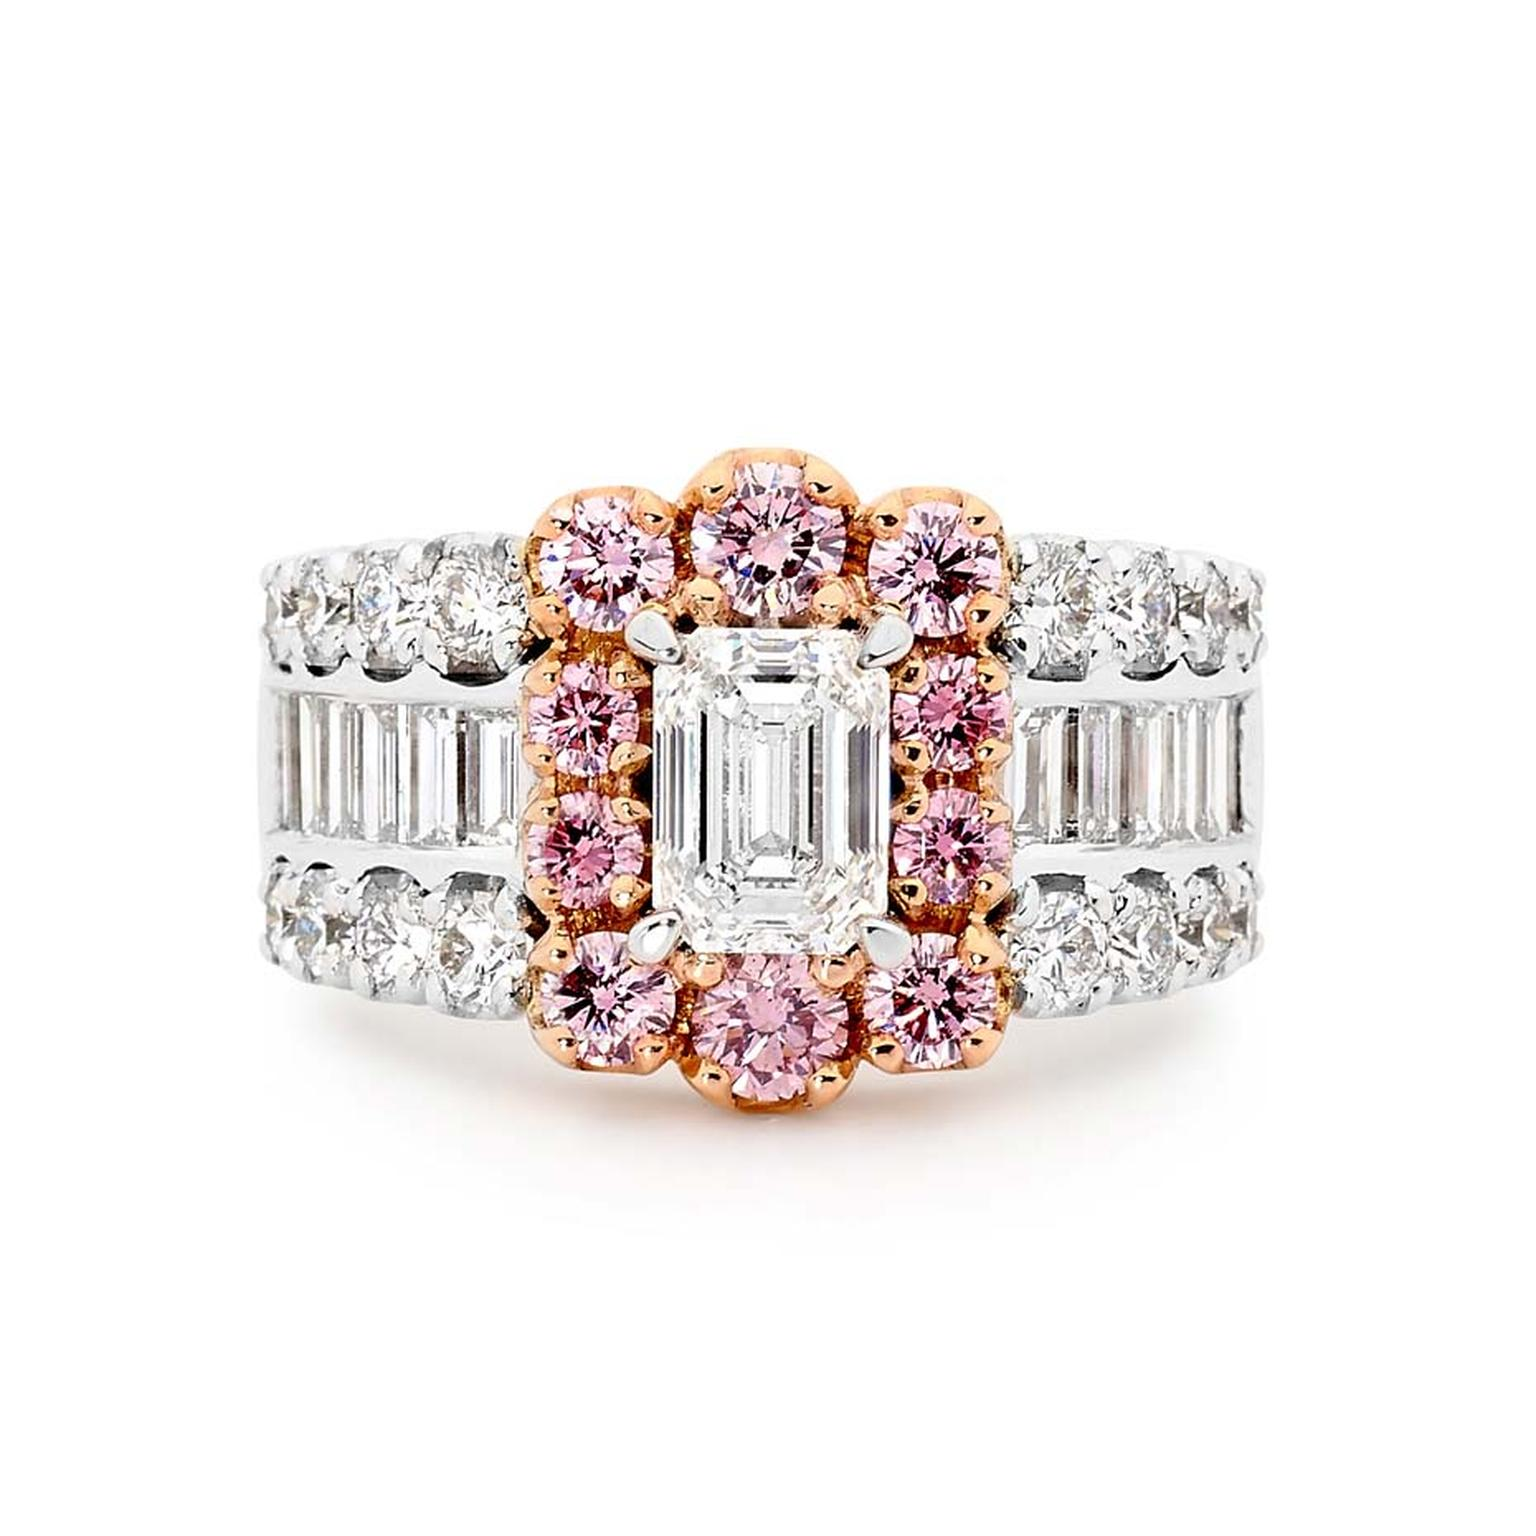 Linneys white and pink diamond ring in white and rose gold.